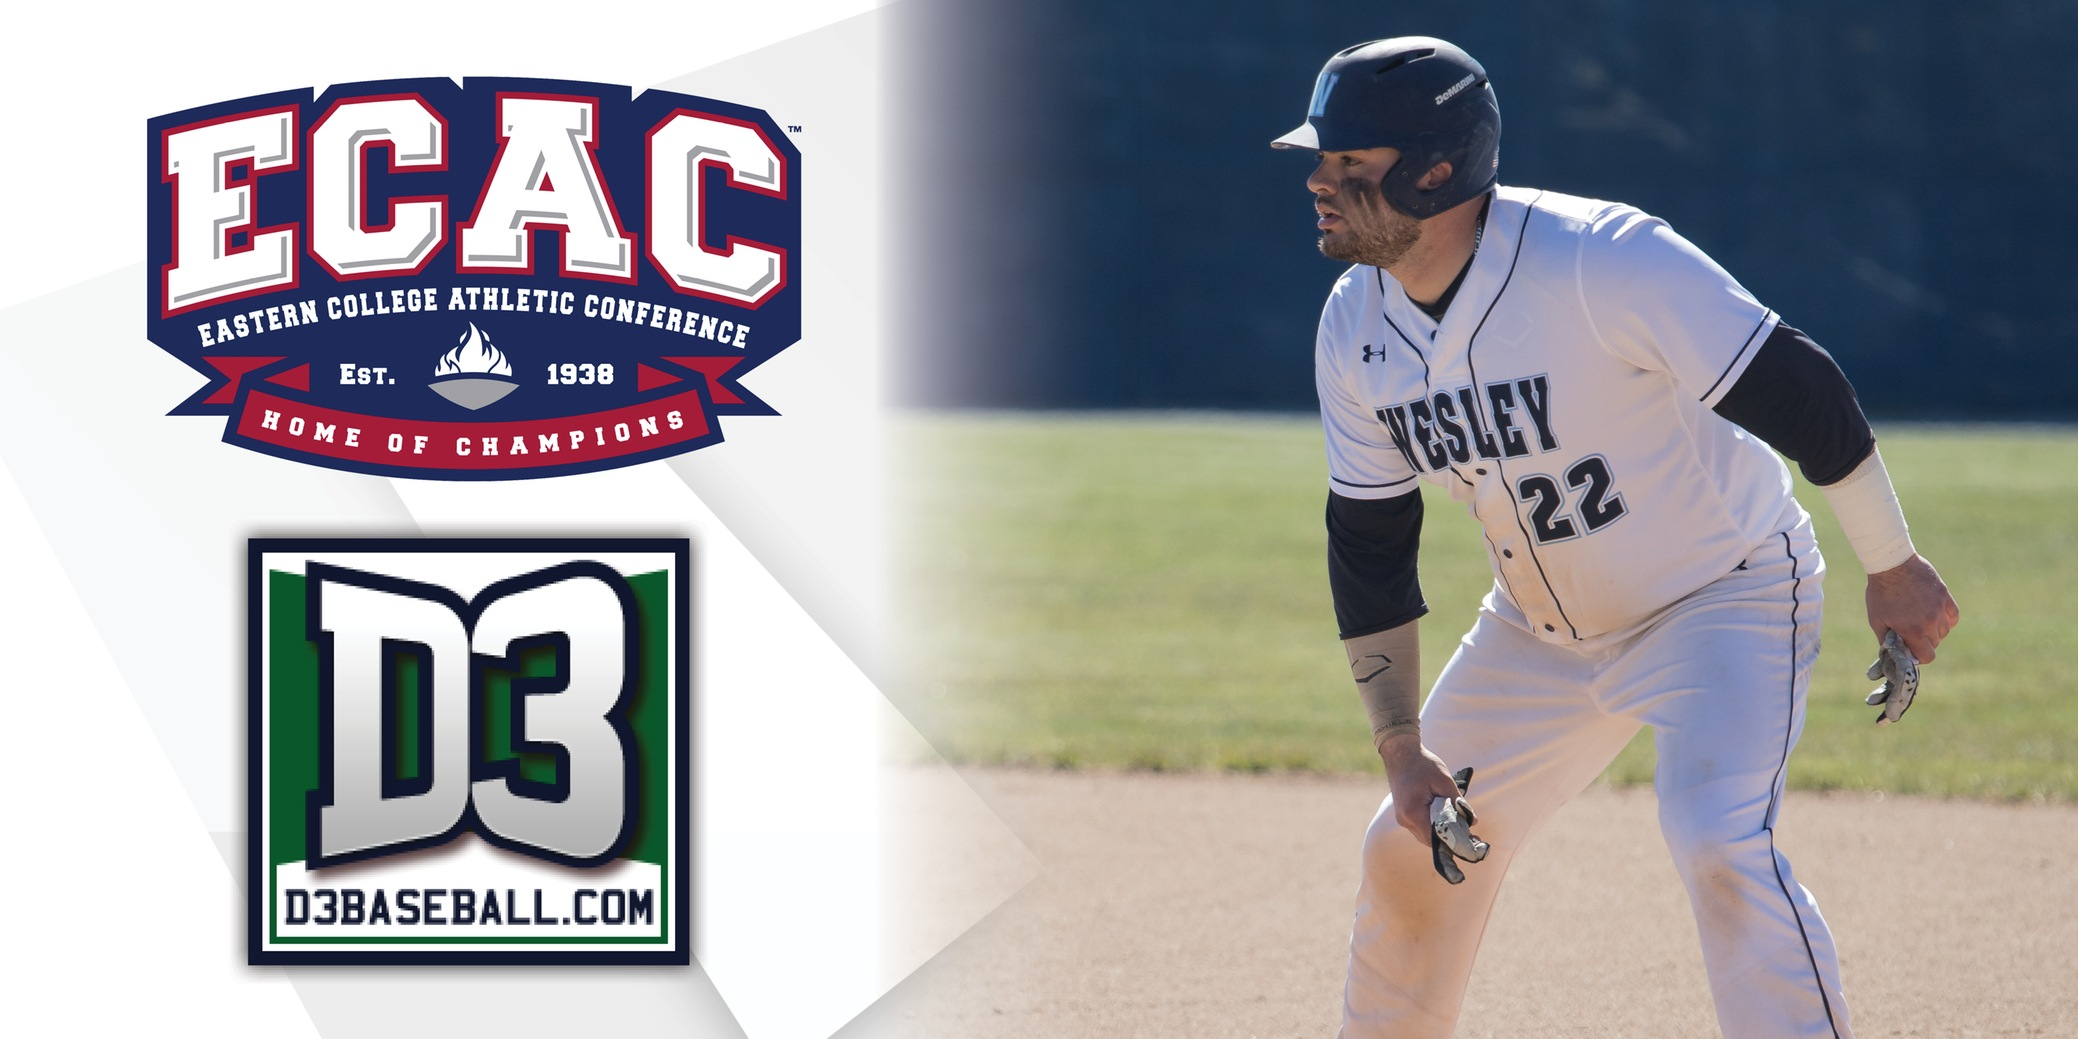 Seibert honored by D3baseball, ECAC